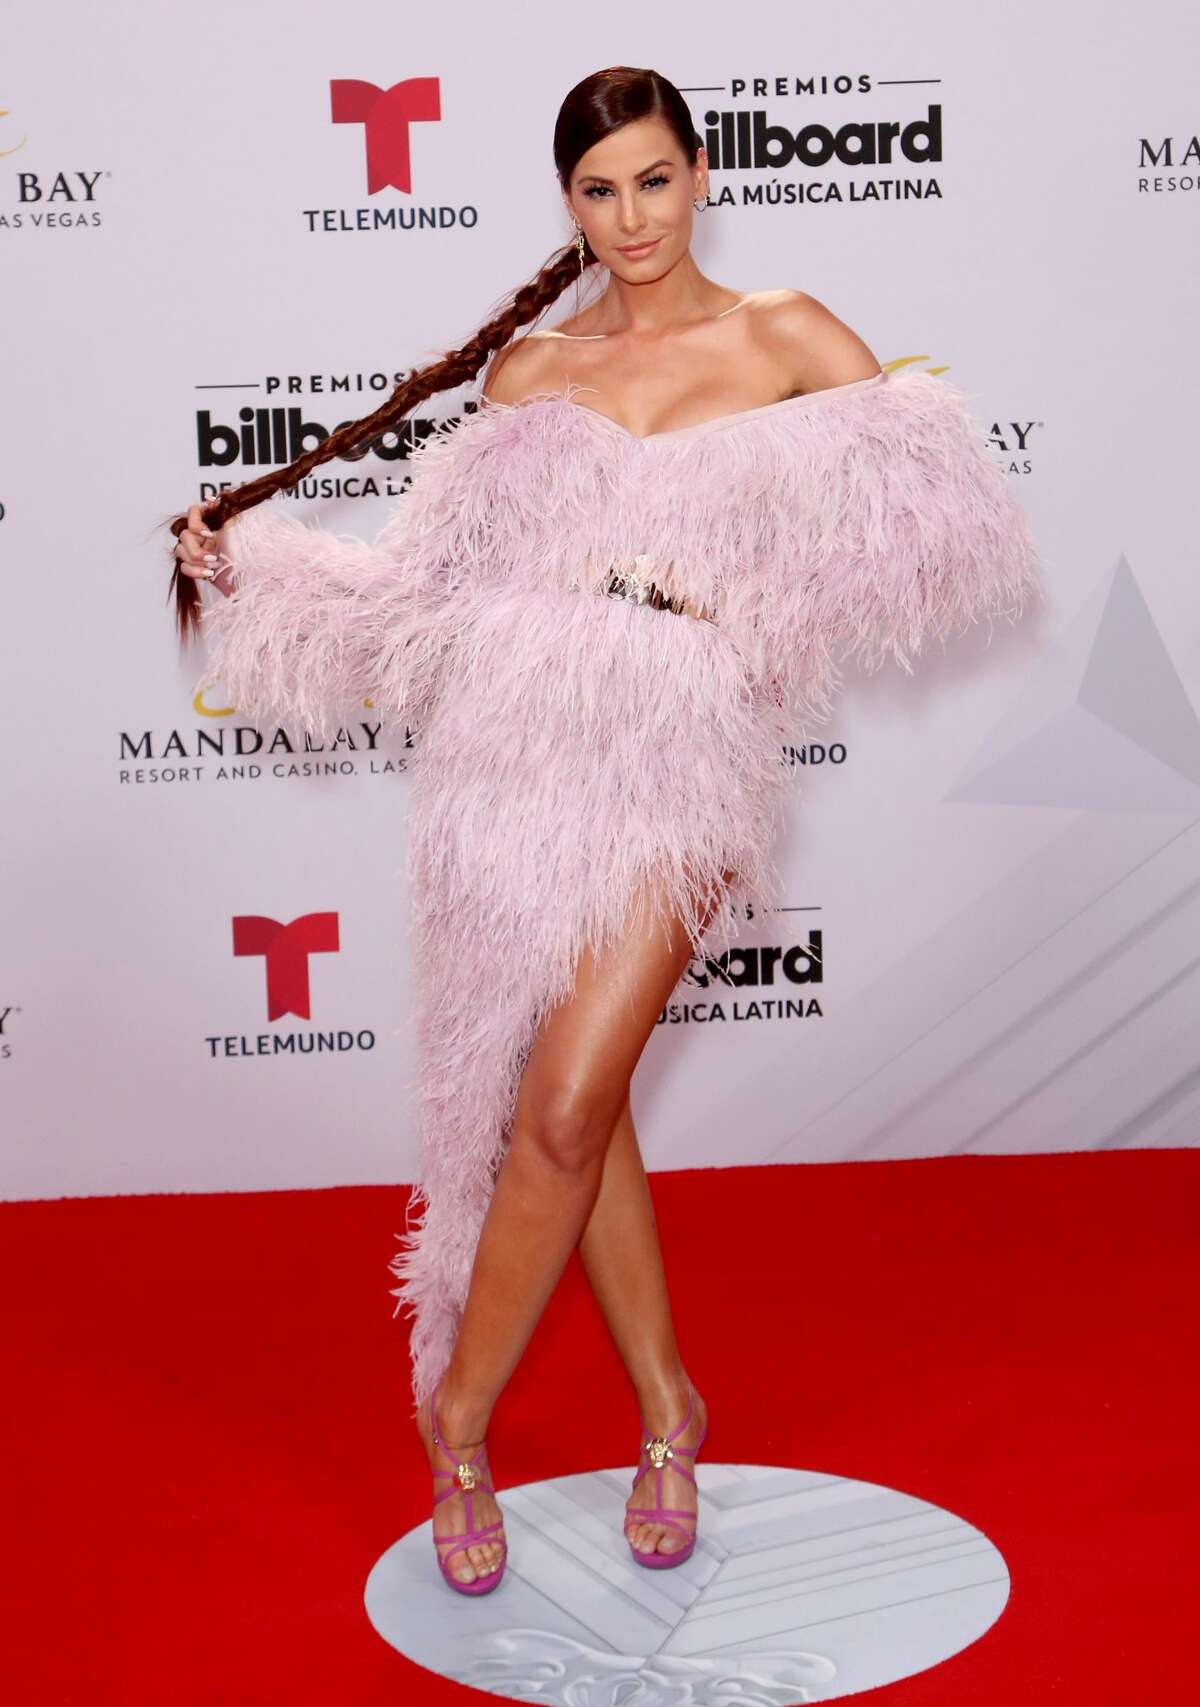 Actress Nastassja Bolivar attends the 2019 Billboard Latin Music Awards at the Mandalay Bay Events Center on April 25, 2019 in Las Vegas, Nevada. (Photo by Gabe Ginsberg/WireImage)